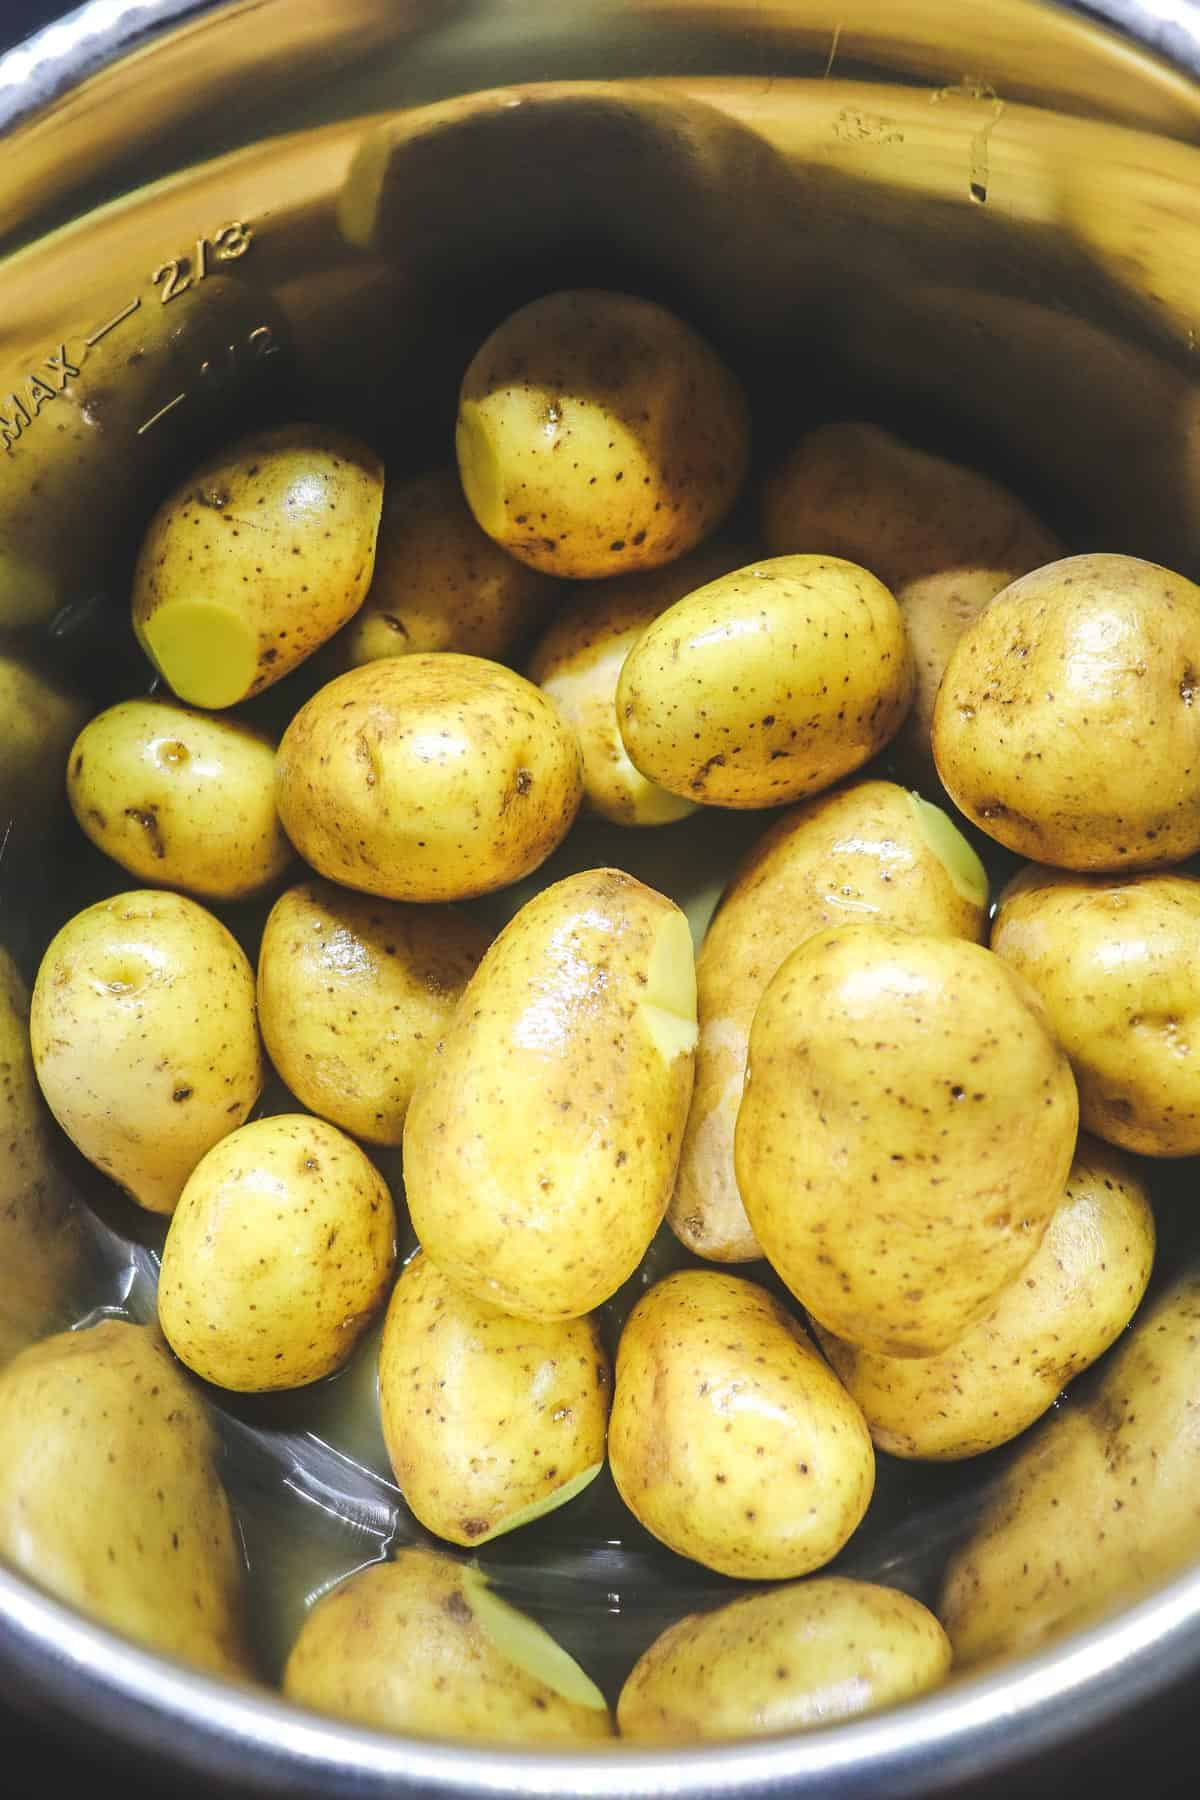 uncooked yukon gold potatoes in the instant pot